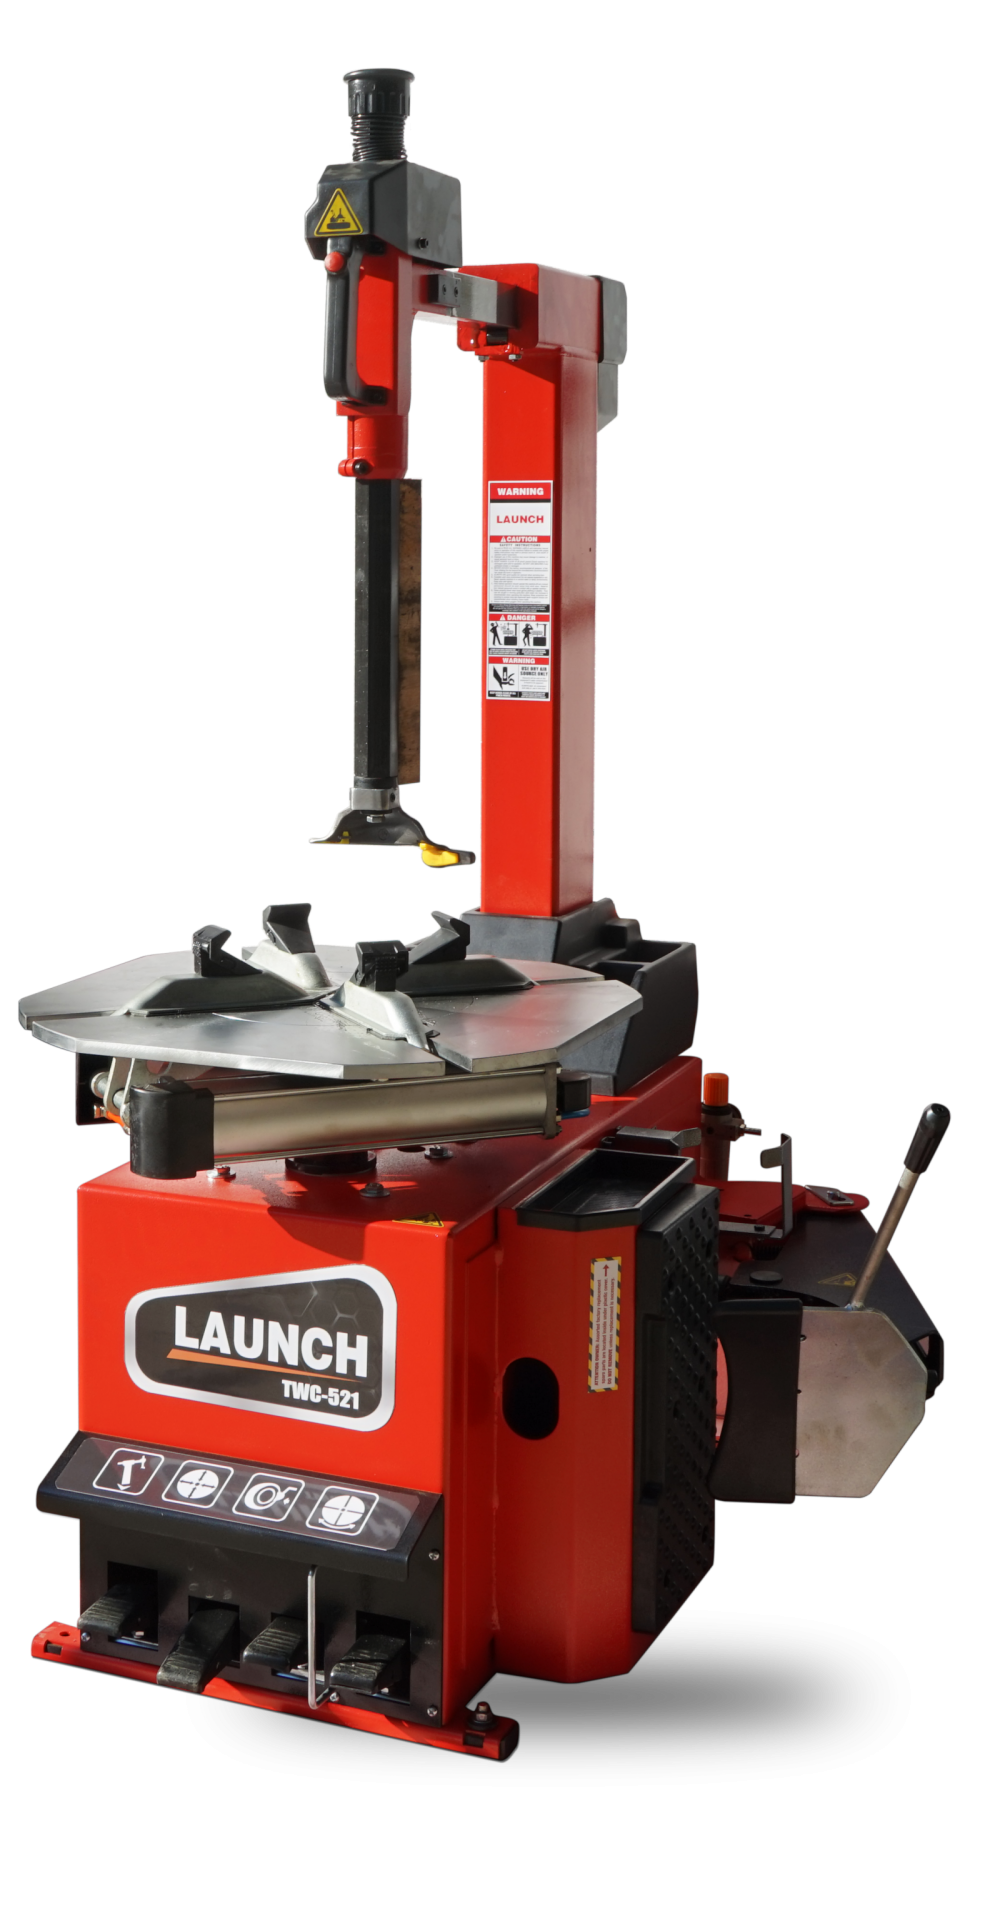 LAUNCH TYRE CHANGER TWC-521 Tyre Changer (LAUNCH) Selangor, Malaysia, Kuala Lumpur (KL), Seri Kembangan Supplier, Suppliers, Supply, Supplies | Beta Equipments Trading Sdn Bhd